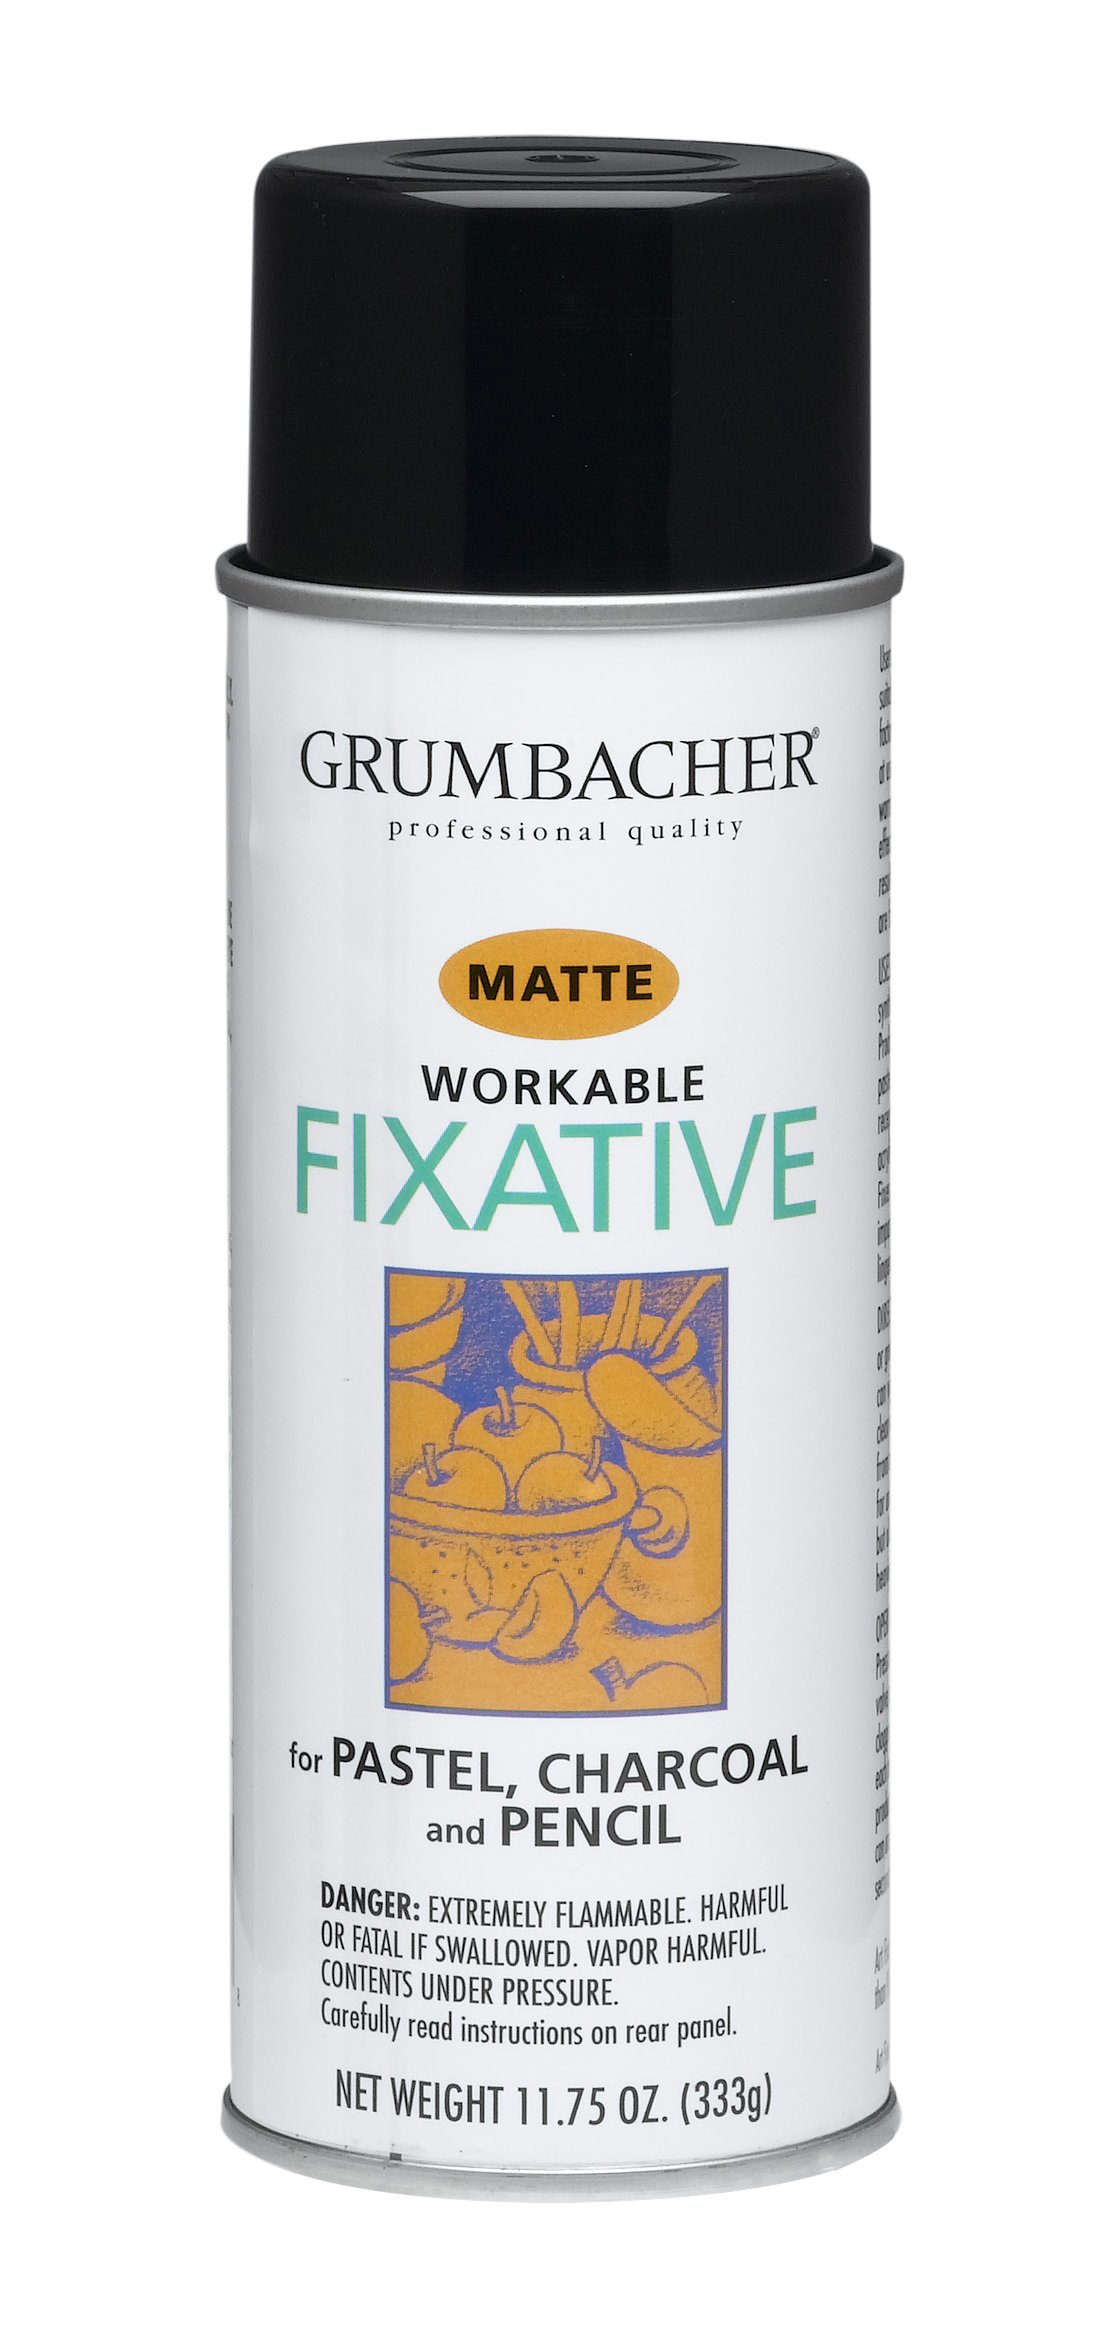 Grumbacher 546 11-3/4-Ounce Workable Fixative Spray, 11-3/4-Ounce Can